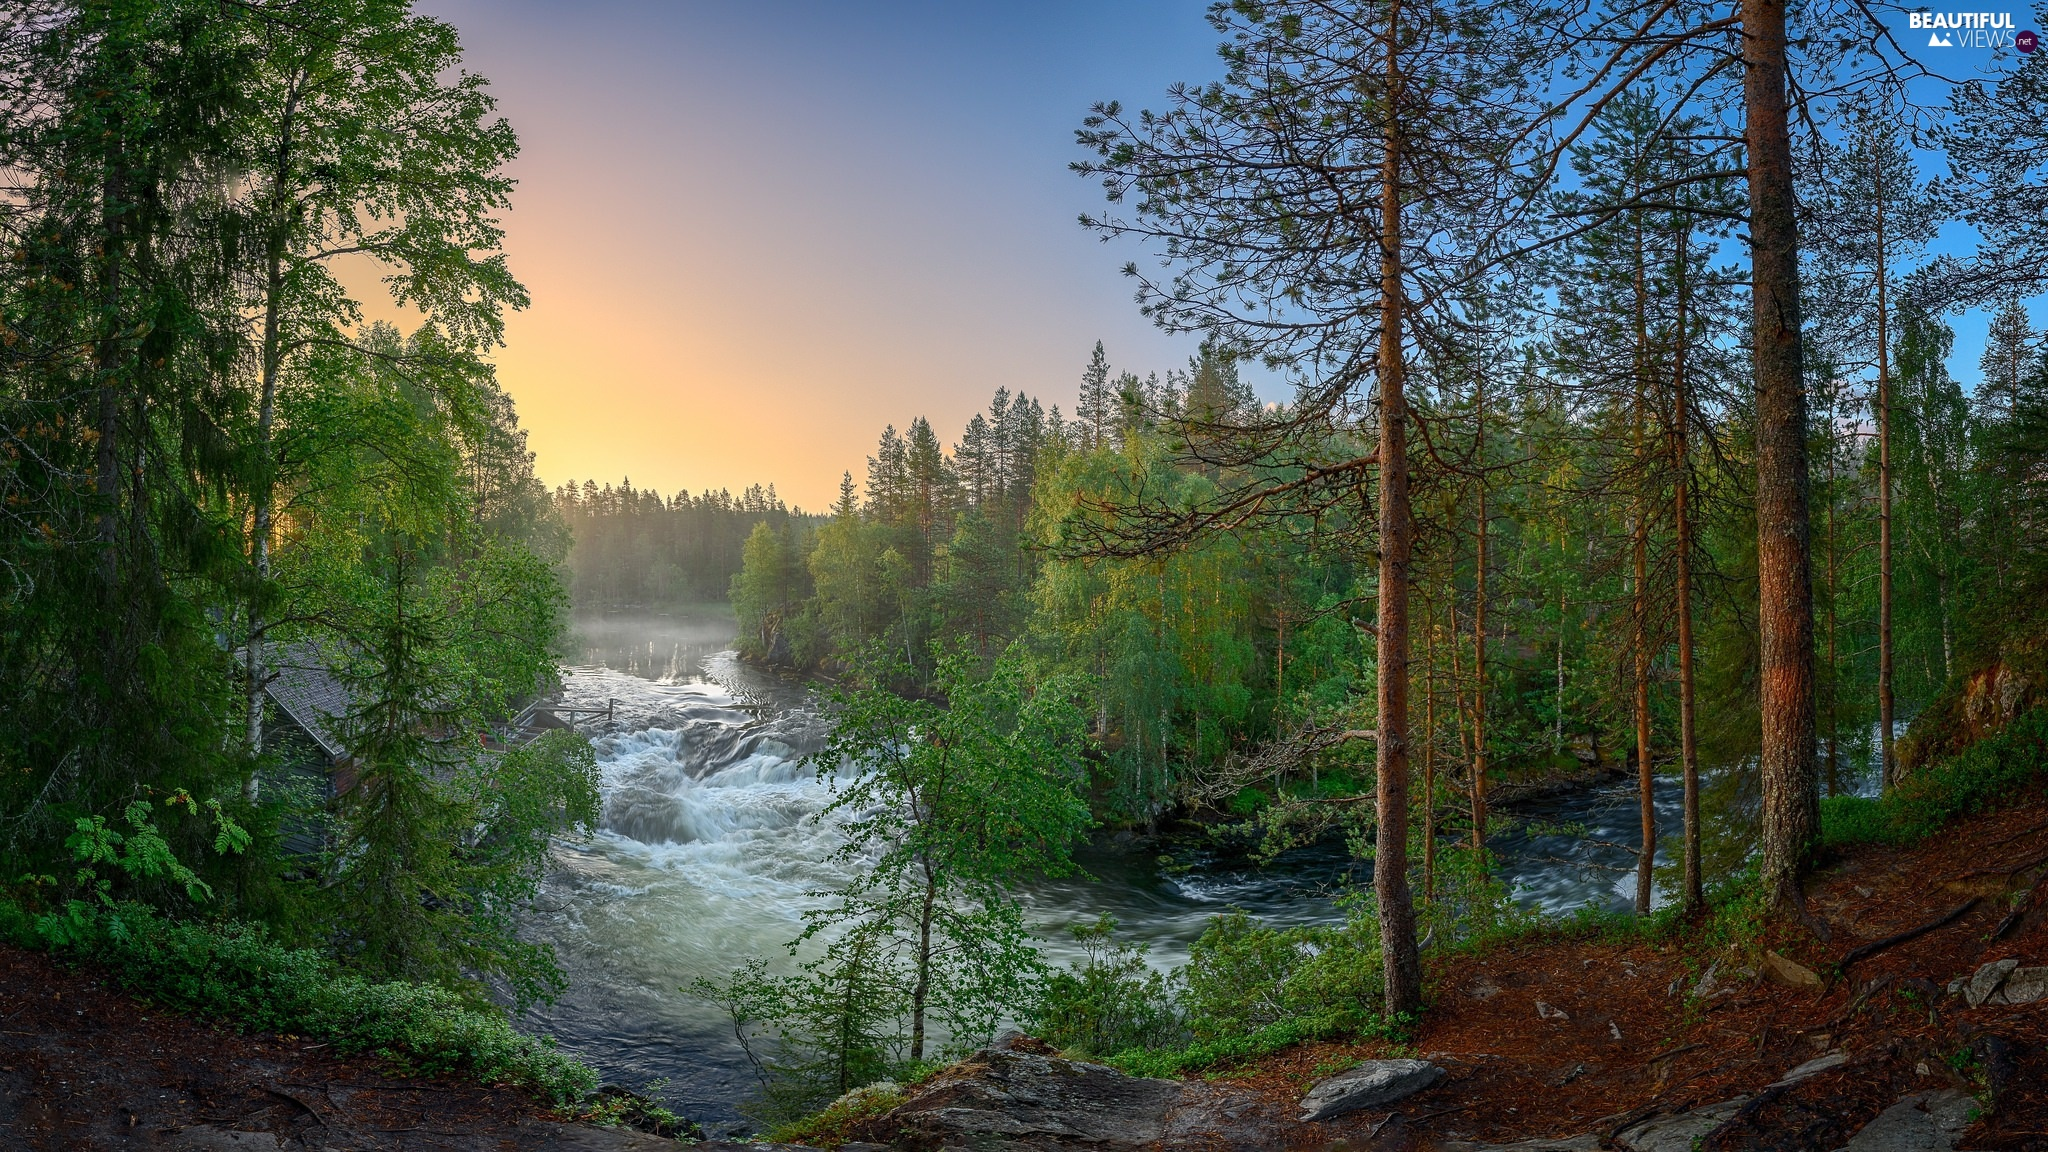 Lapland, Finland, Kitkajoki River, Oulanka National Park, trees, viewes, forest, River, Spring